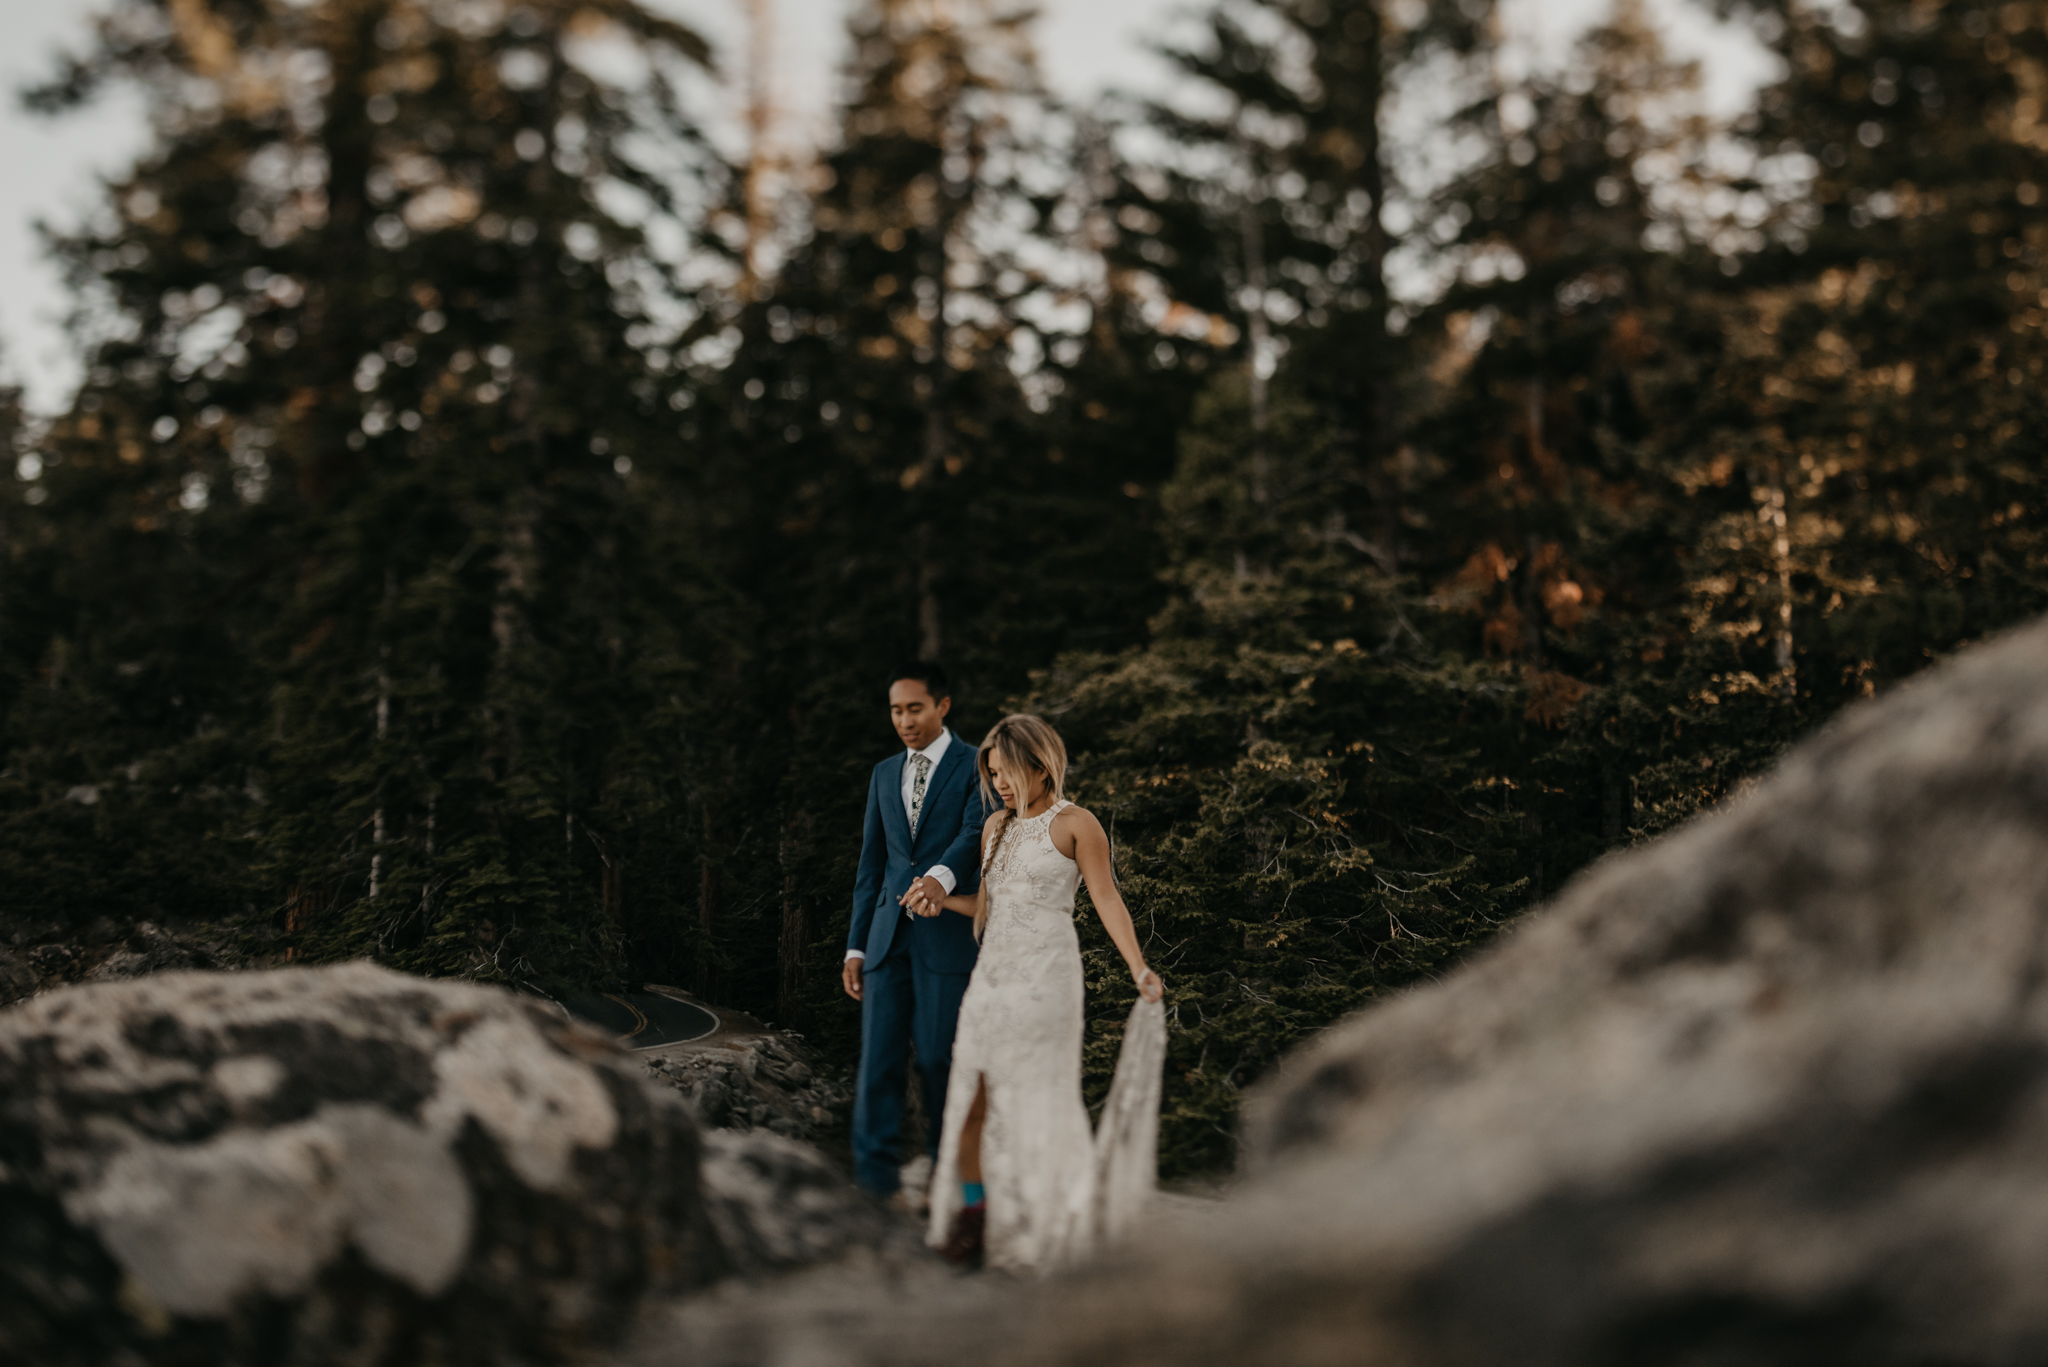 © Isaiah + Taylor Photography - Yosemite Nationanl Park Elopement Photographer - Evergreen Lodge Wedding-036.jpg